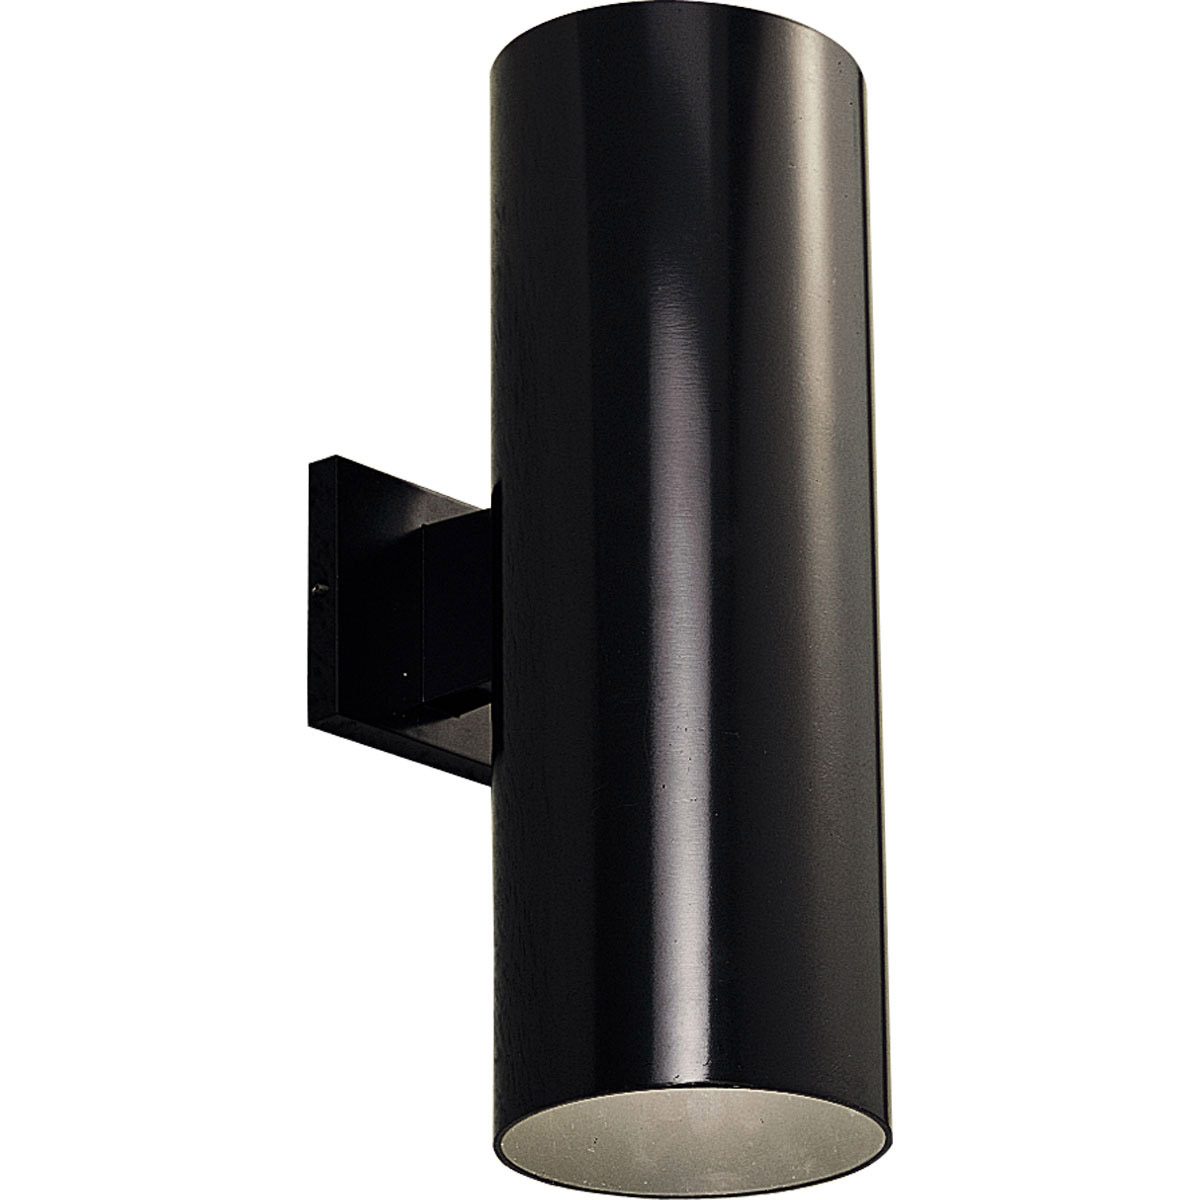 Progress Lighting P5642 31 Cylinder Outdoor Wall Mount Fixture